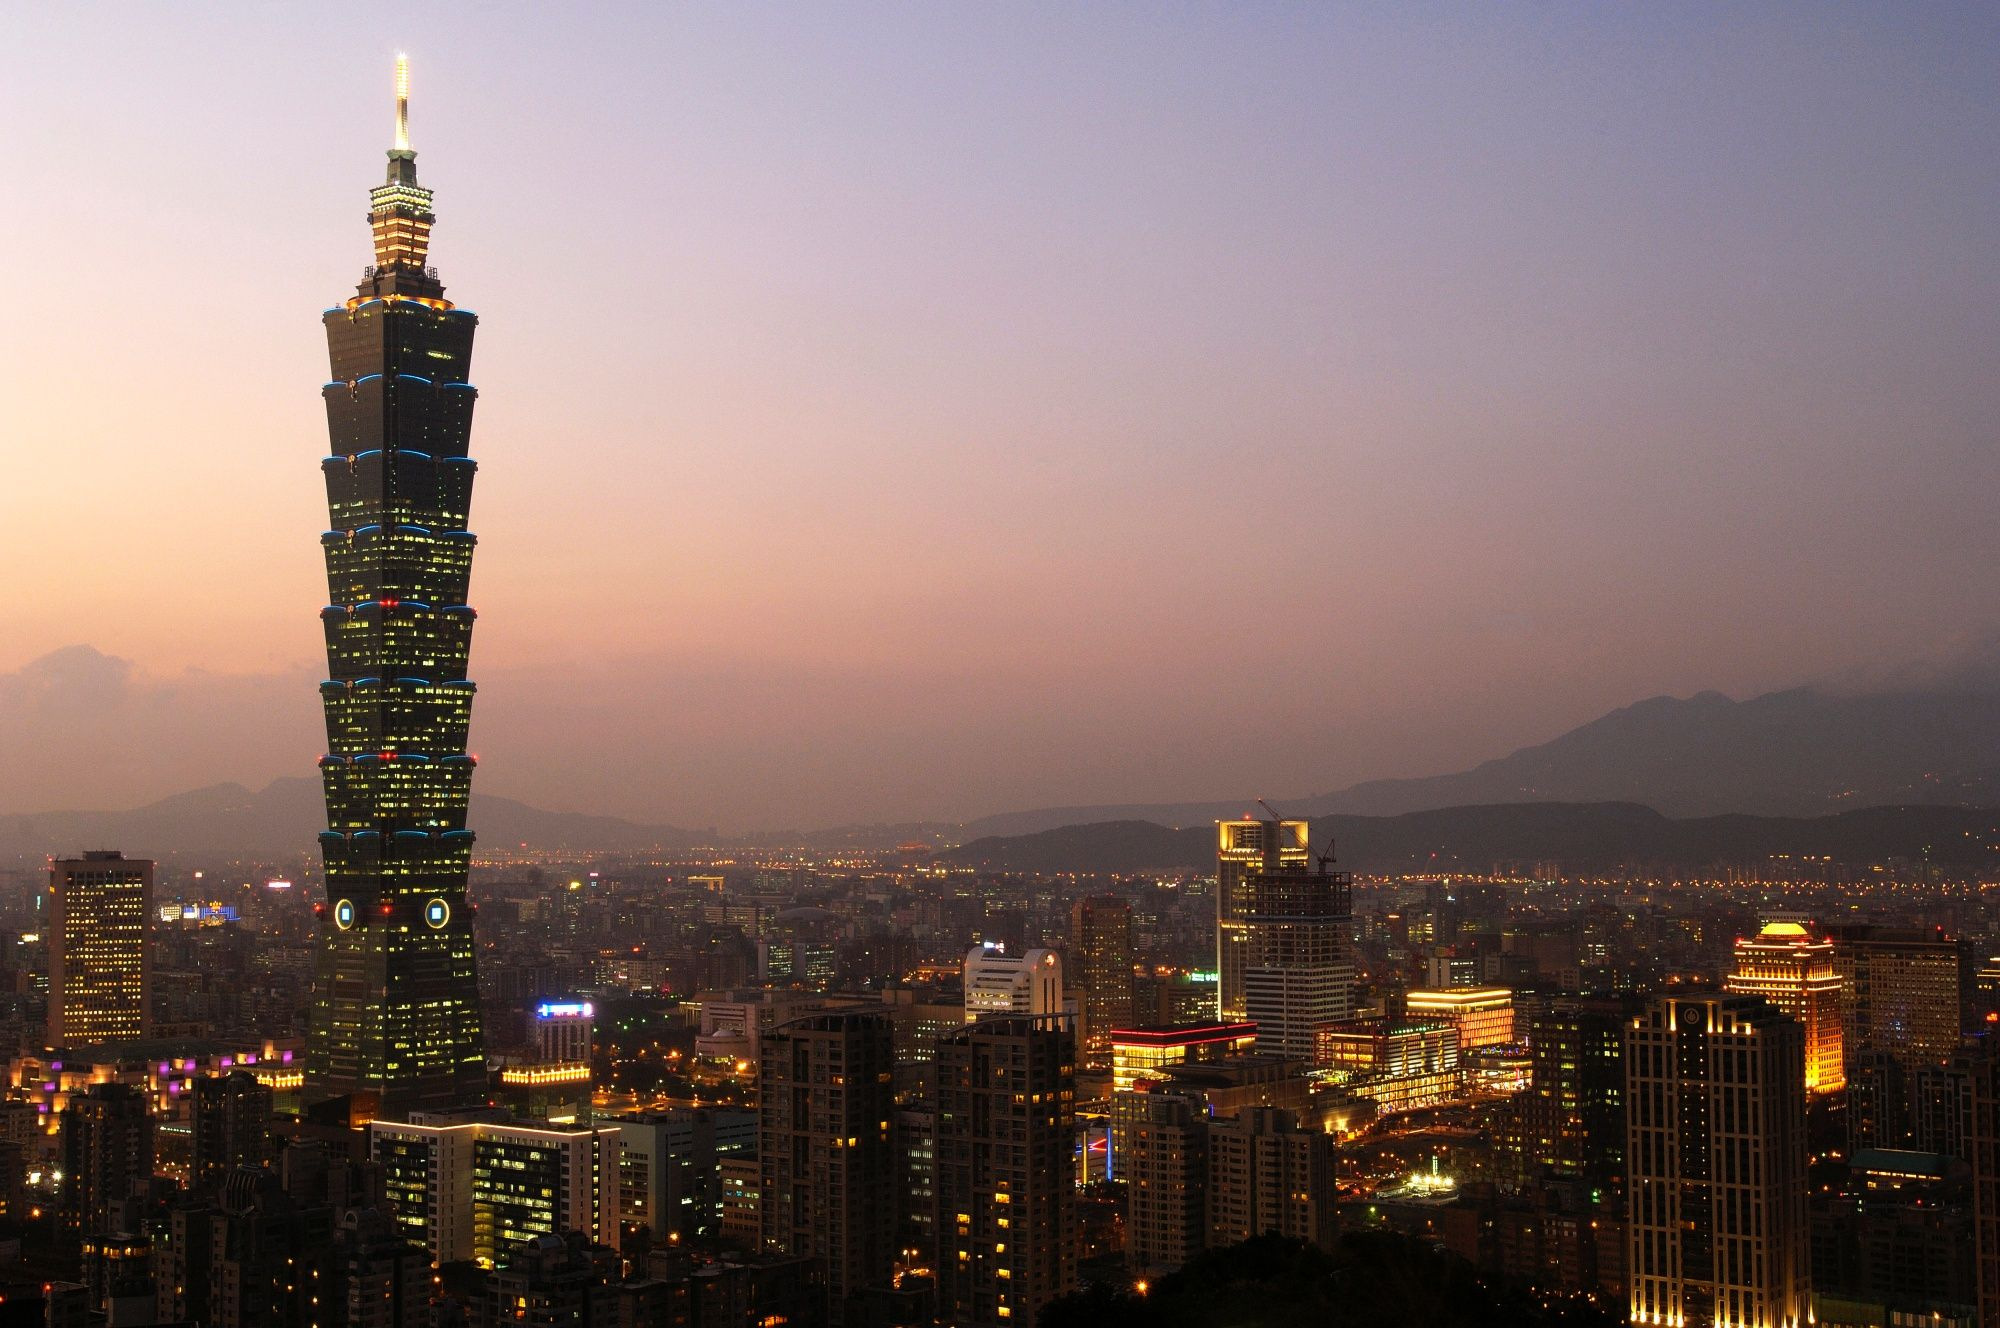 TAIPEI, TAIWAN - 2007/11/13: Taipei's Eastern district or Hsini District, with the Taipei 101 tower, is seen from Elephant Hill, a popular city viewpoint.. (Photo by Alberto Buzzola/LightRocket via Getty Images)